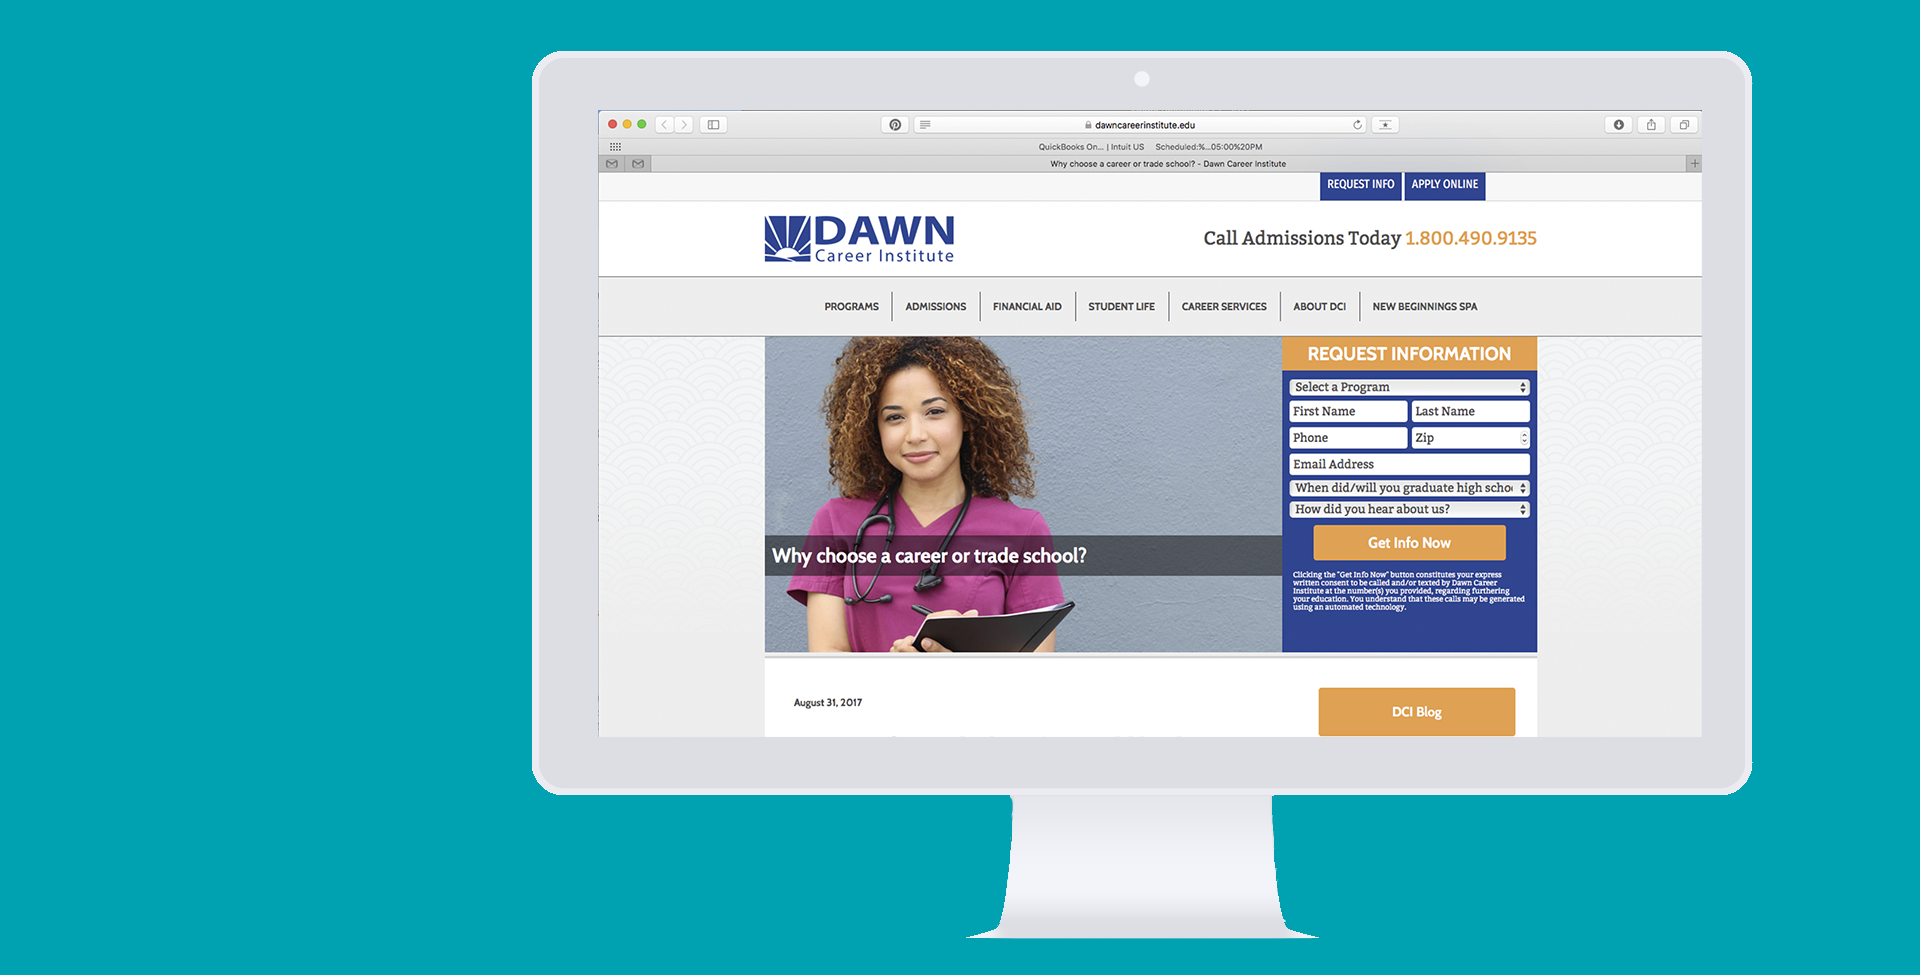 dawn career institute's website